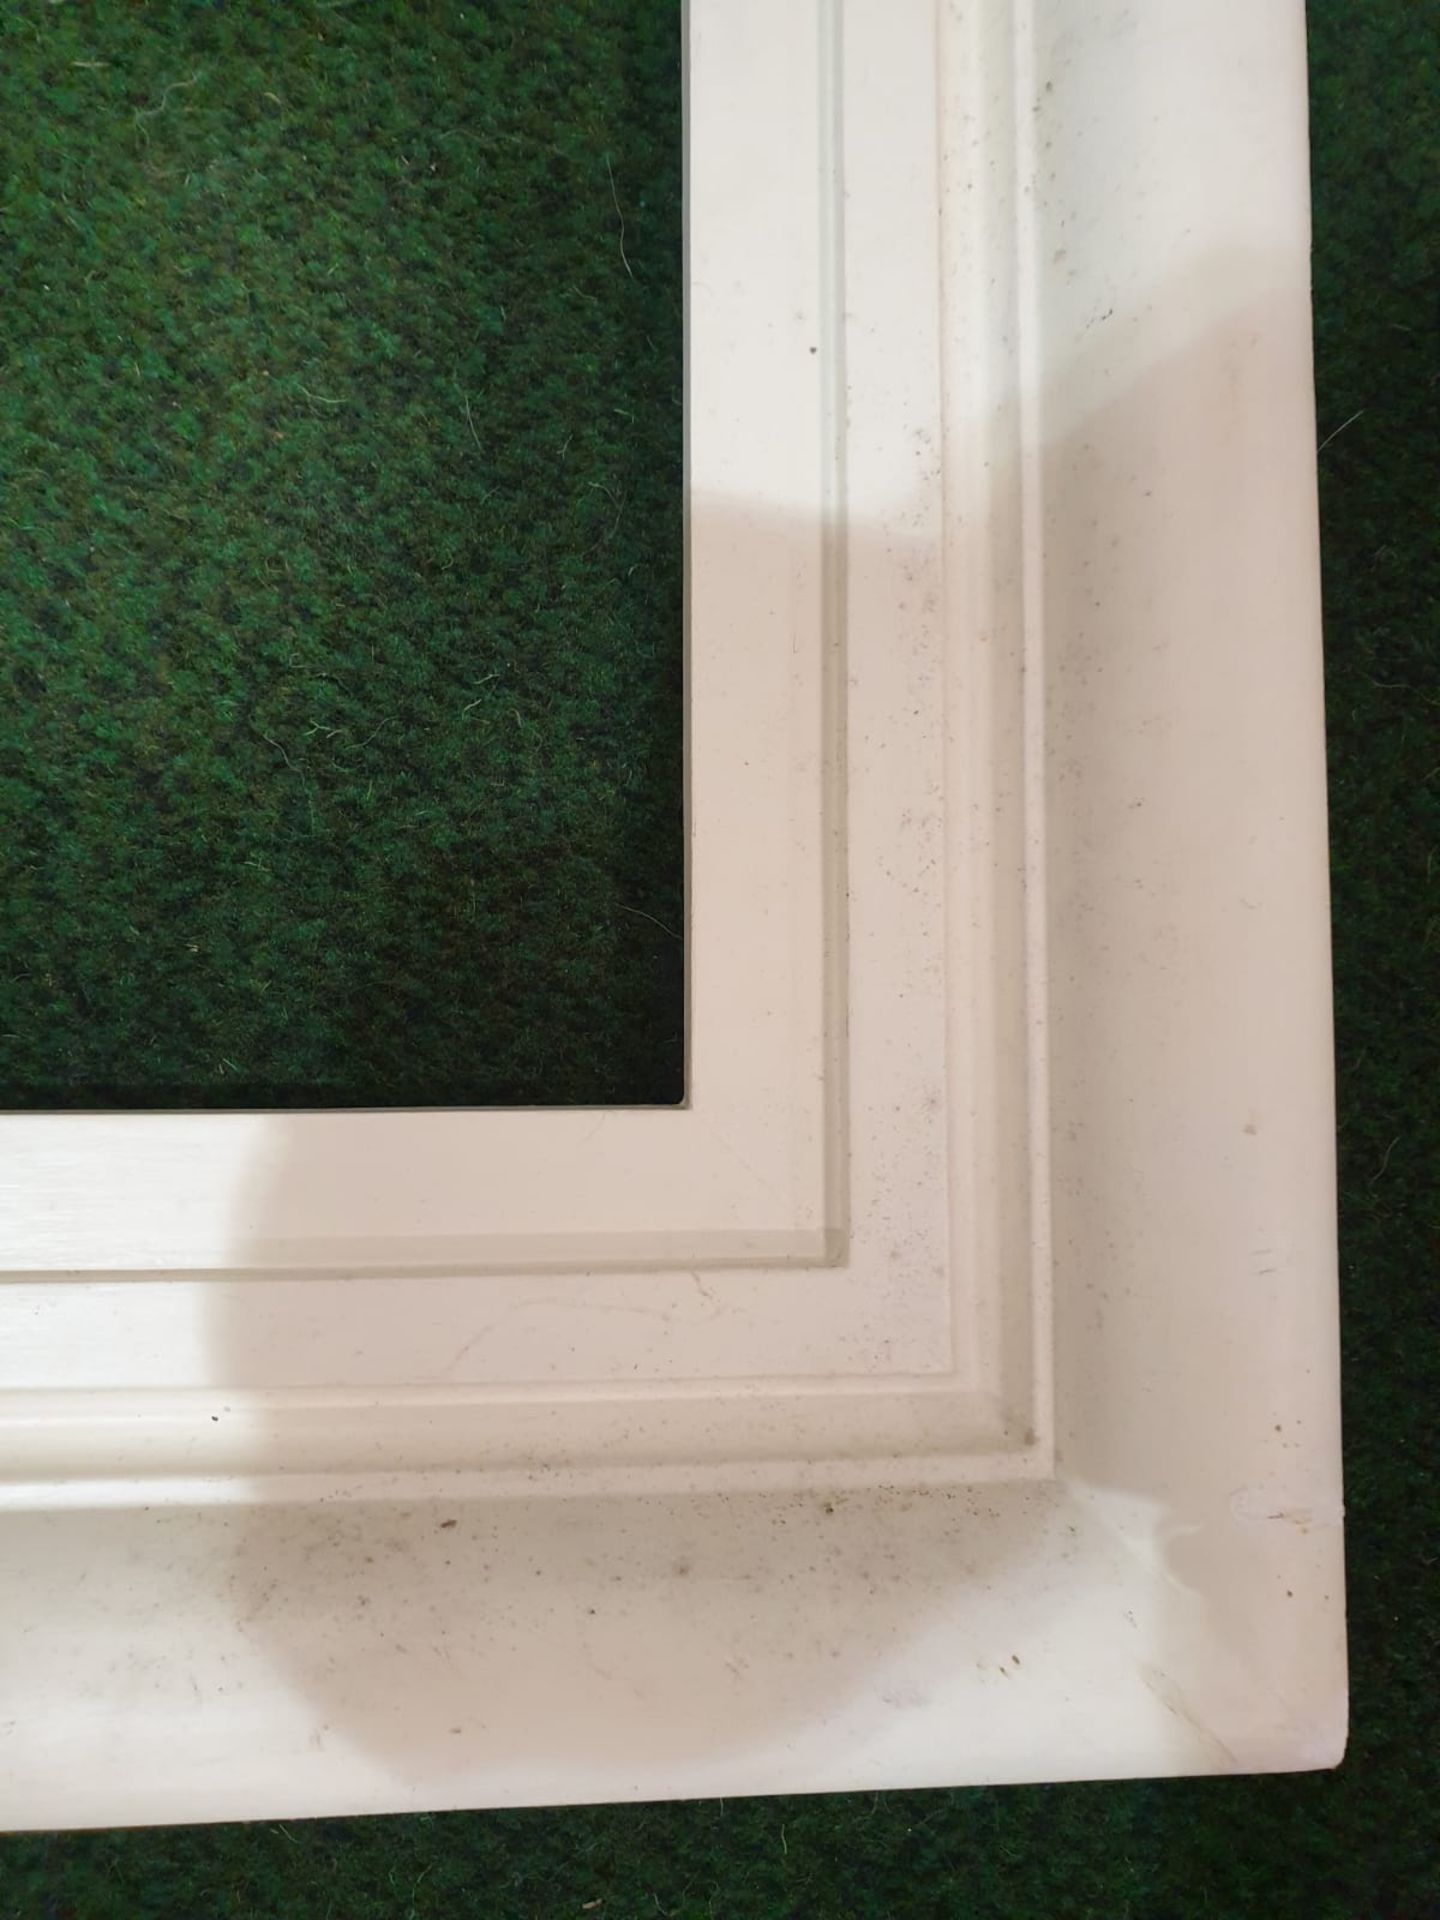 White picture frame 98 x 148cm - Image 4 of 4